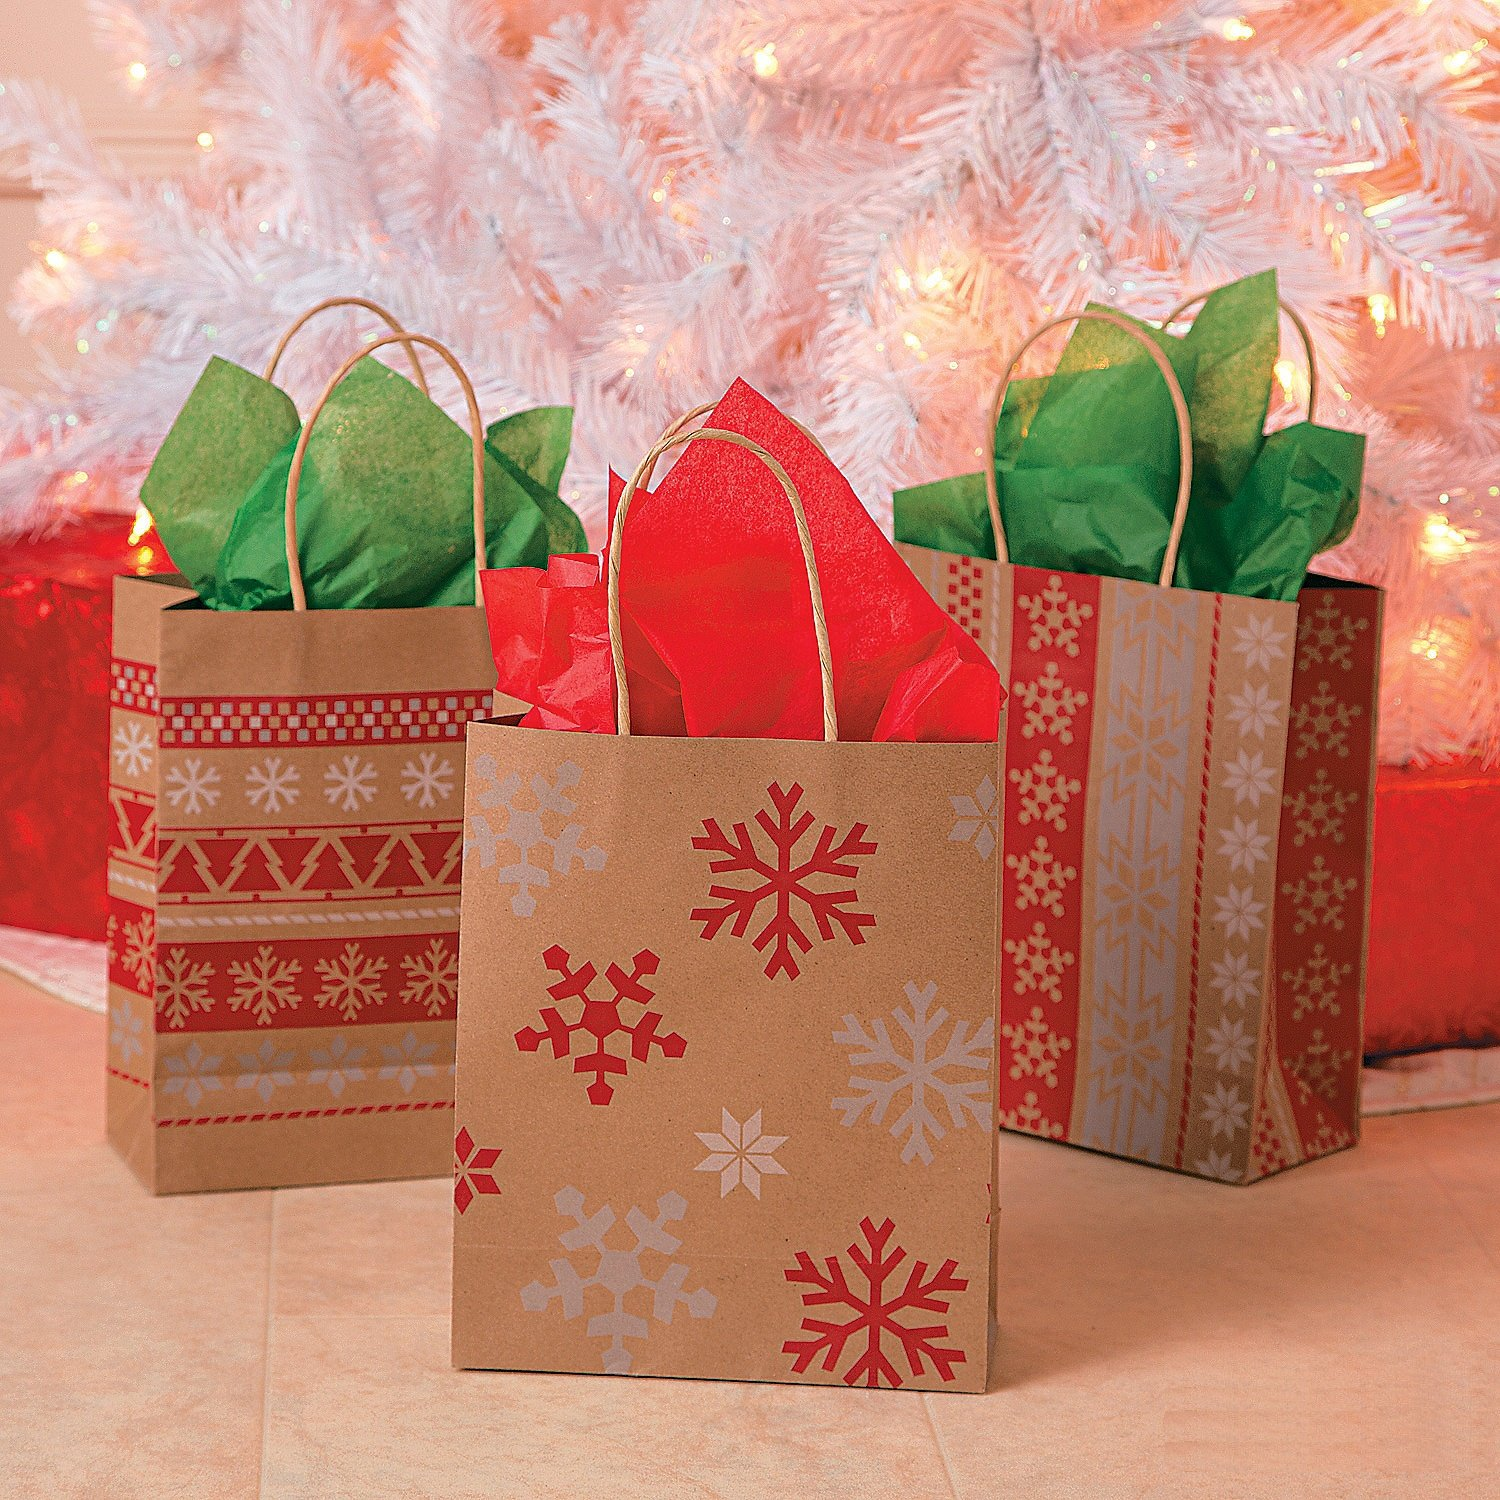 Amazon.com: Christmas Medium Gift Bags Kraft with Glitter ...